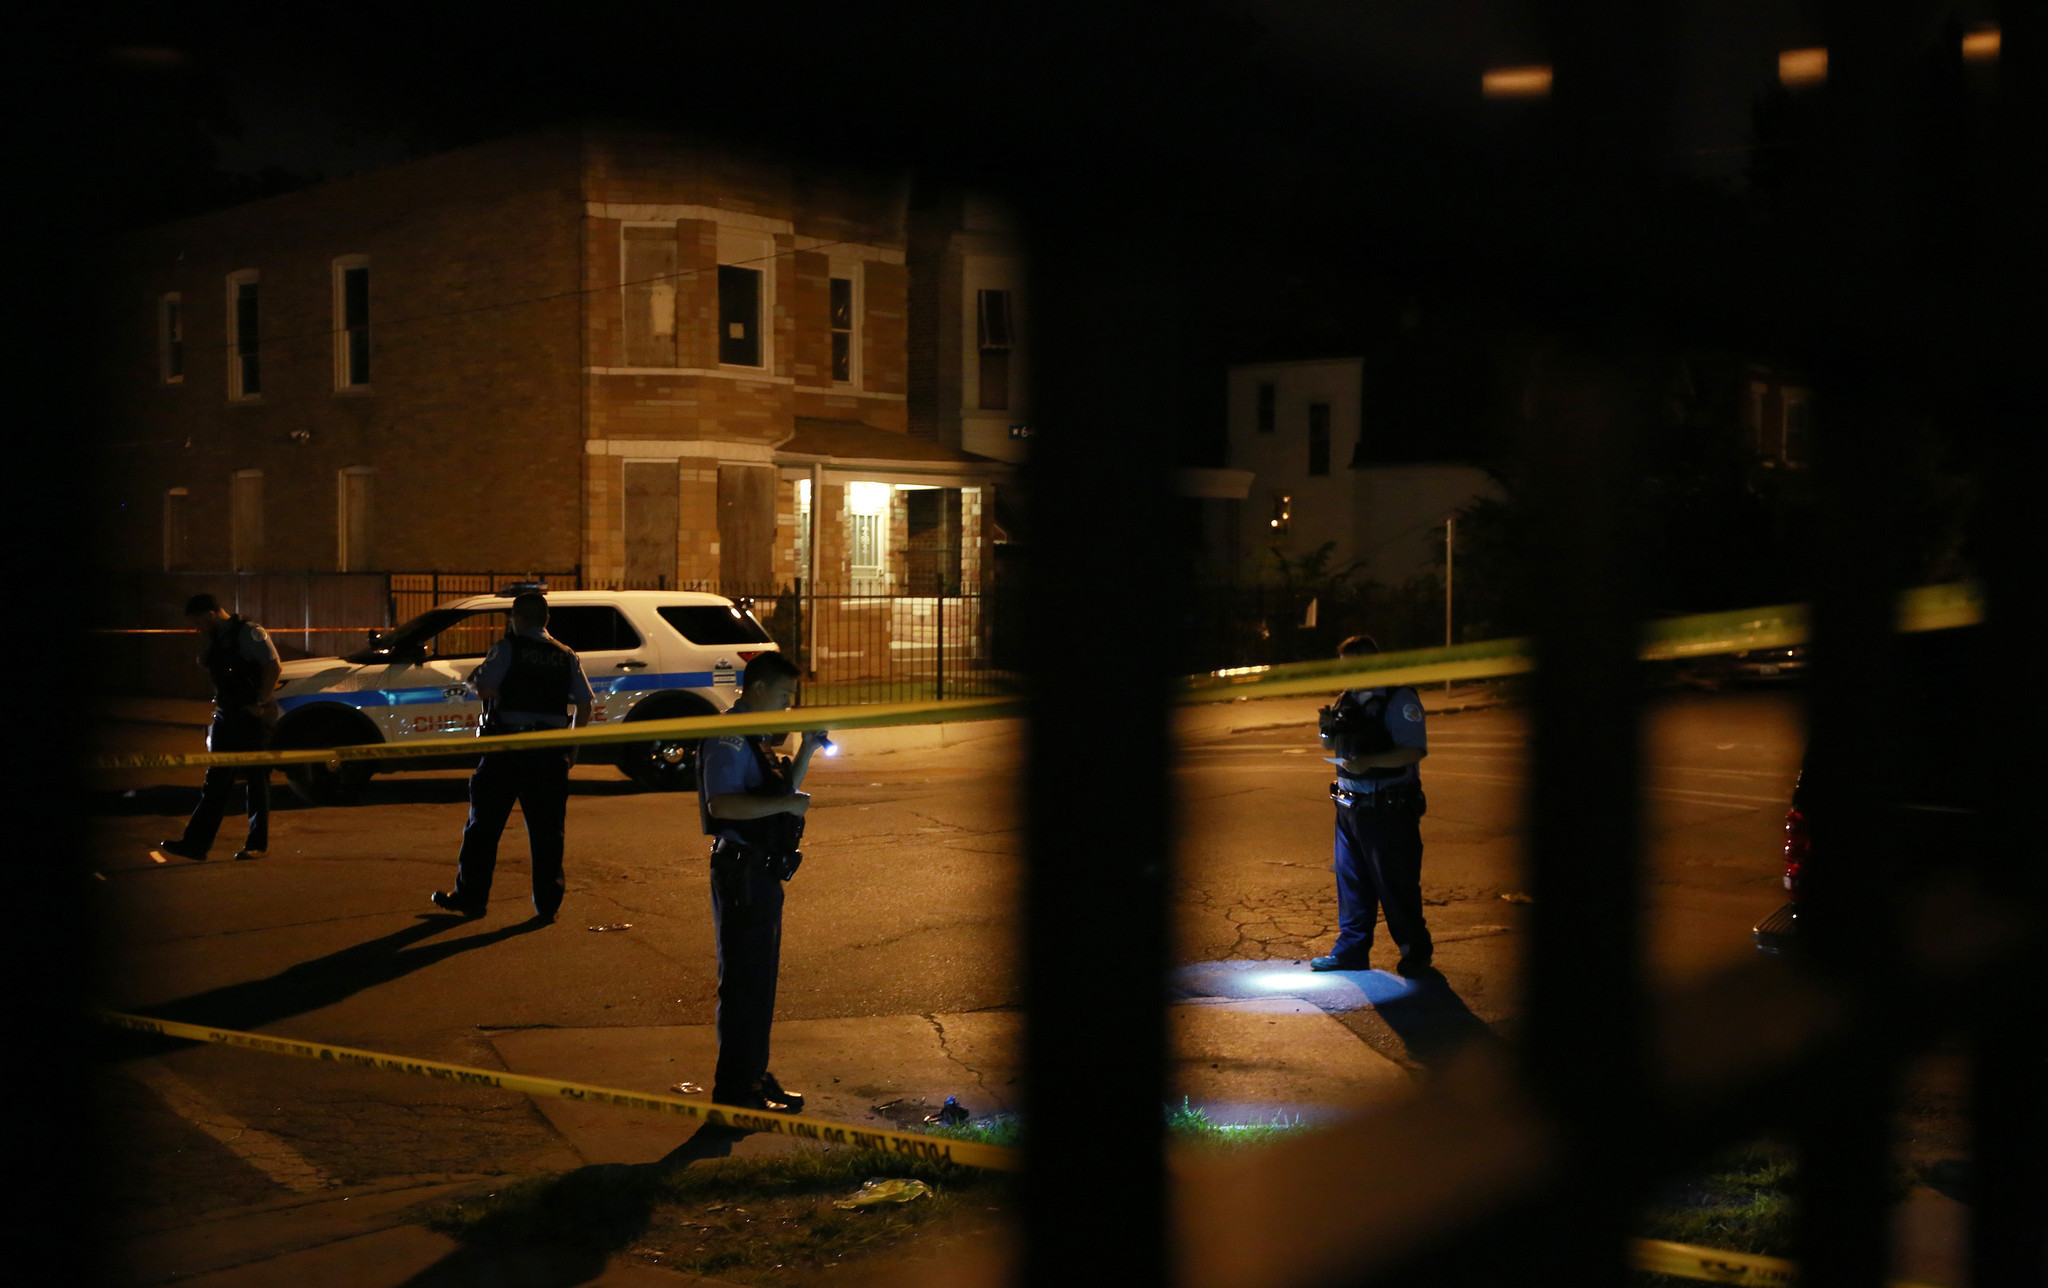 essay on violence in chicago Violence in chicago is mostly concentrated in poor neighborhoods that are predominantly african american and with many uneducated people.